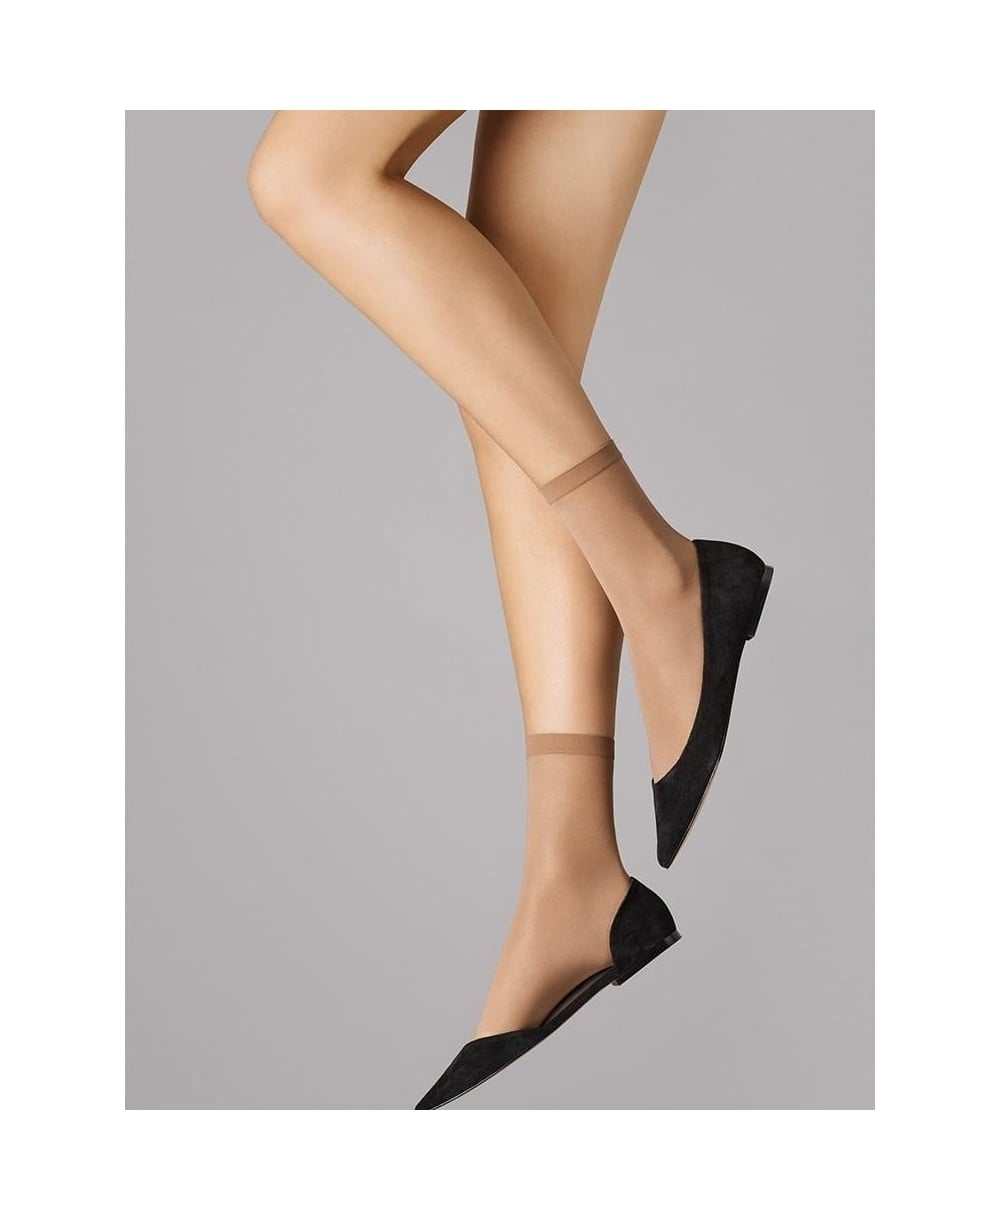 a3d25d7d0 Wolford Satin Touch 20 Socks - Socks from luxury-legs.com UK